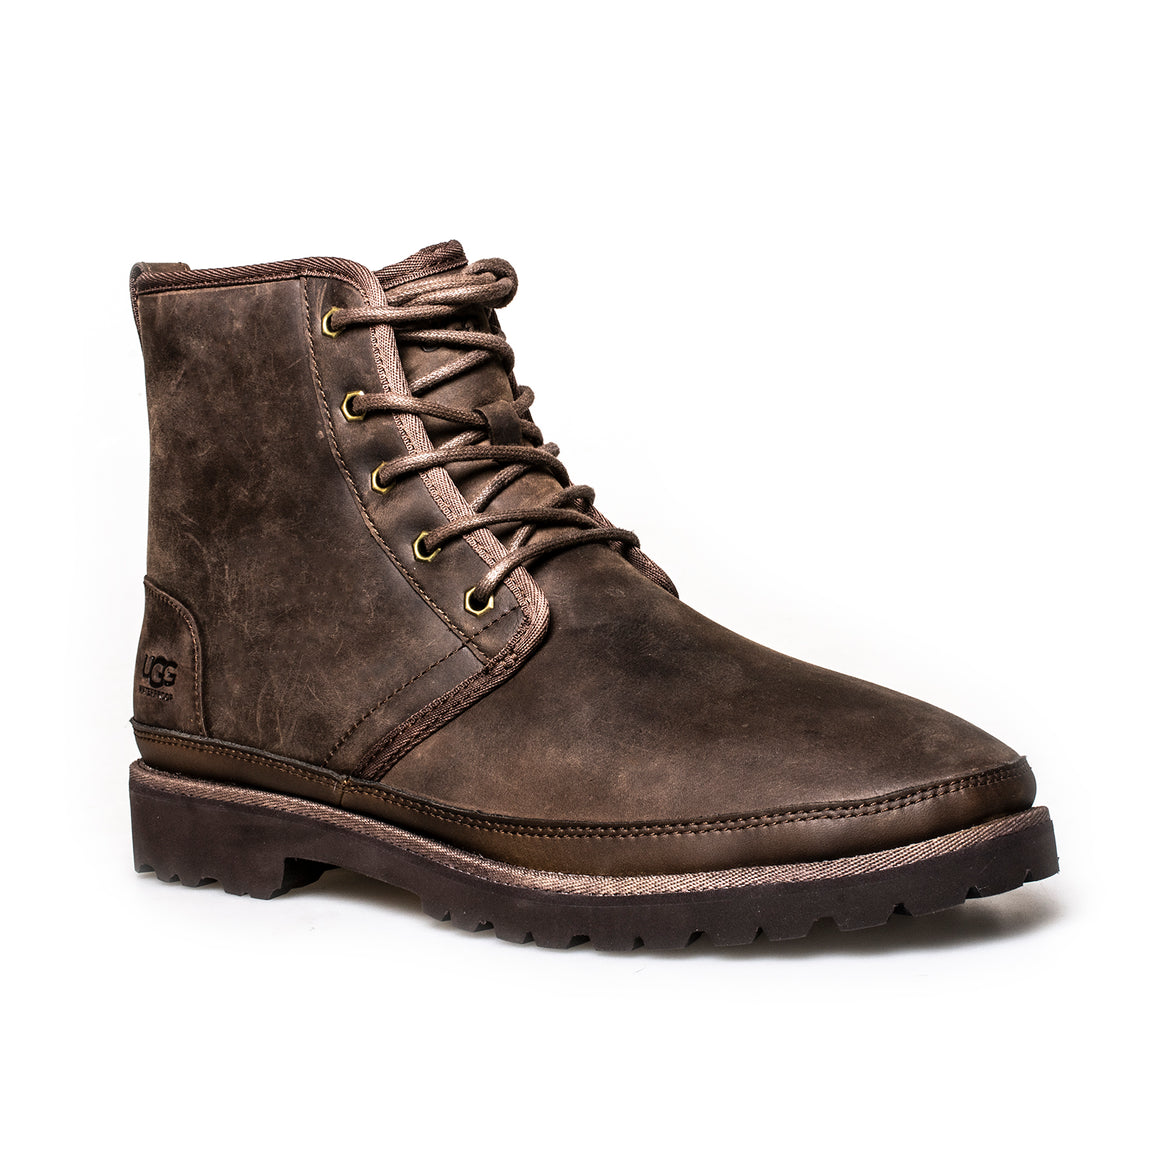 UGG Harkland WP Grizzly Boots - Men's